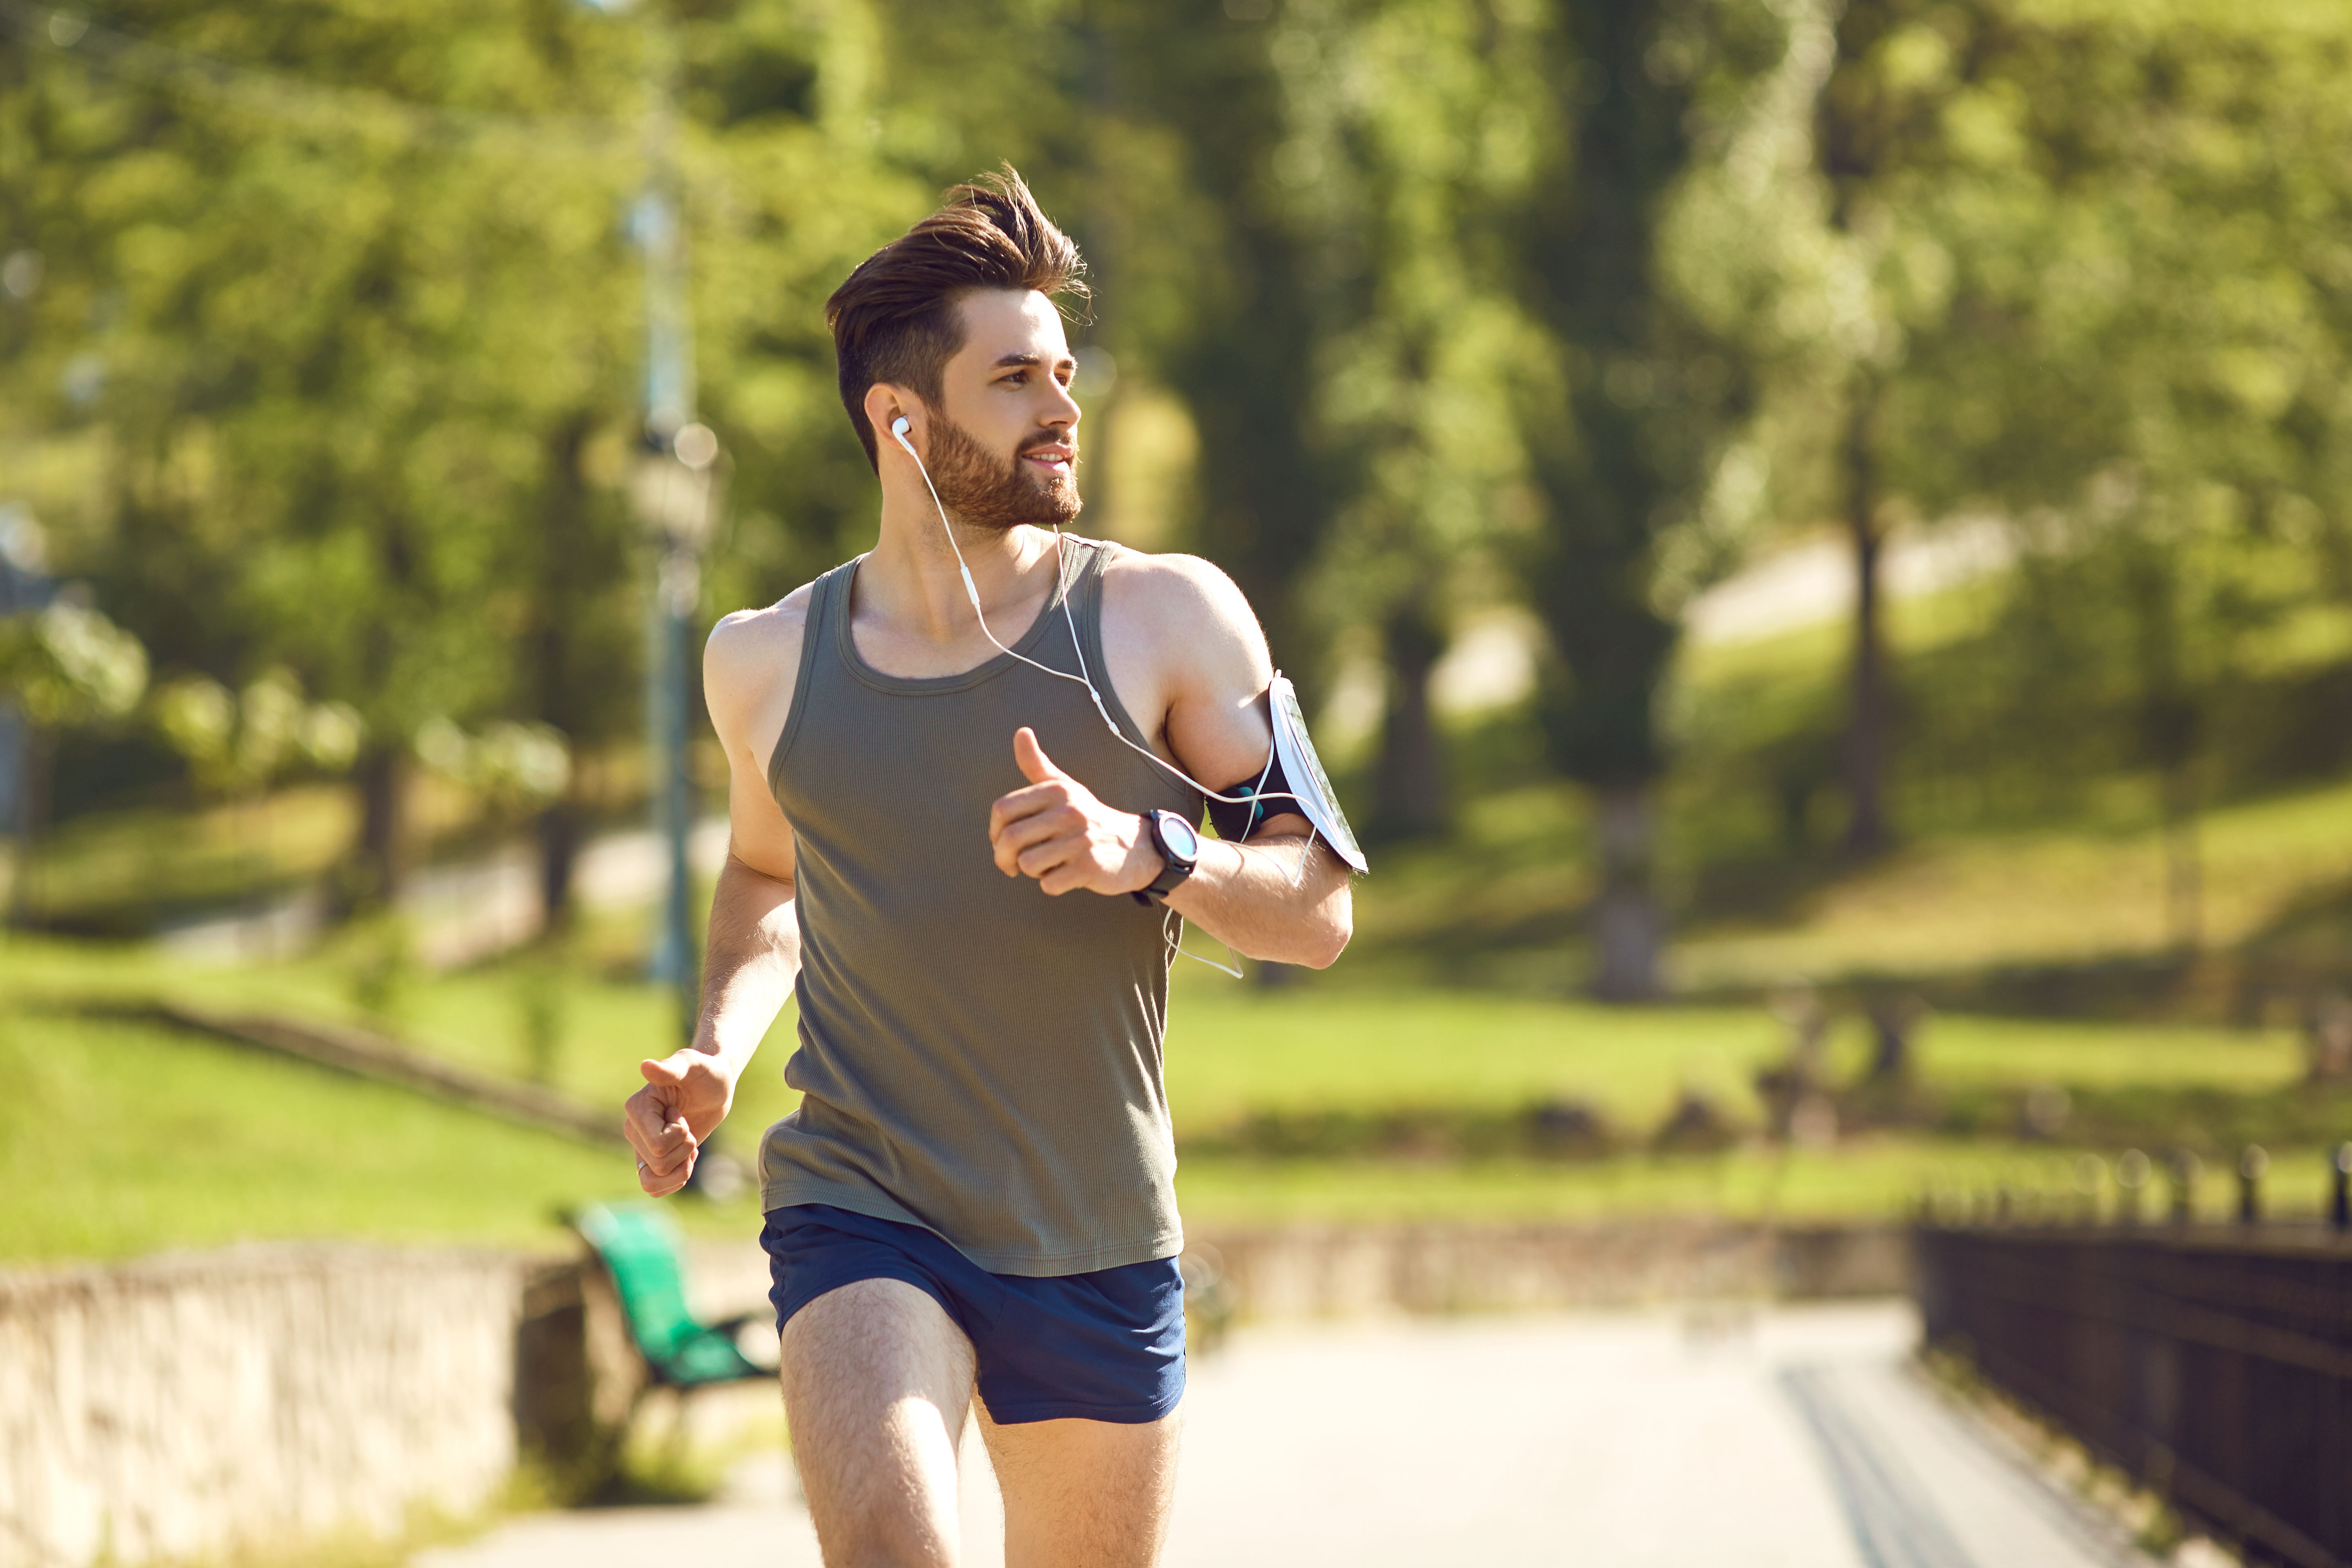 How to Run (Safely) Six Days a Week